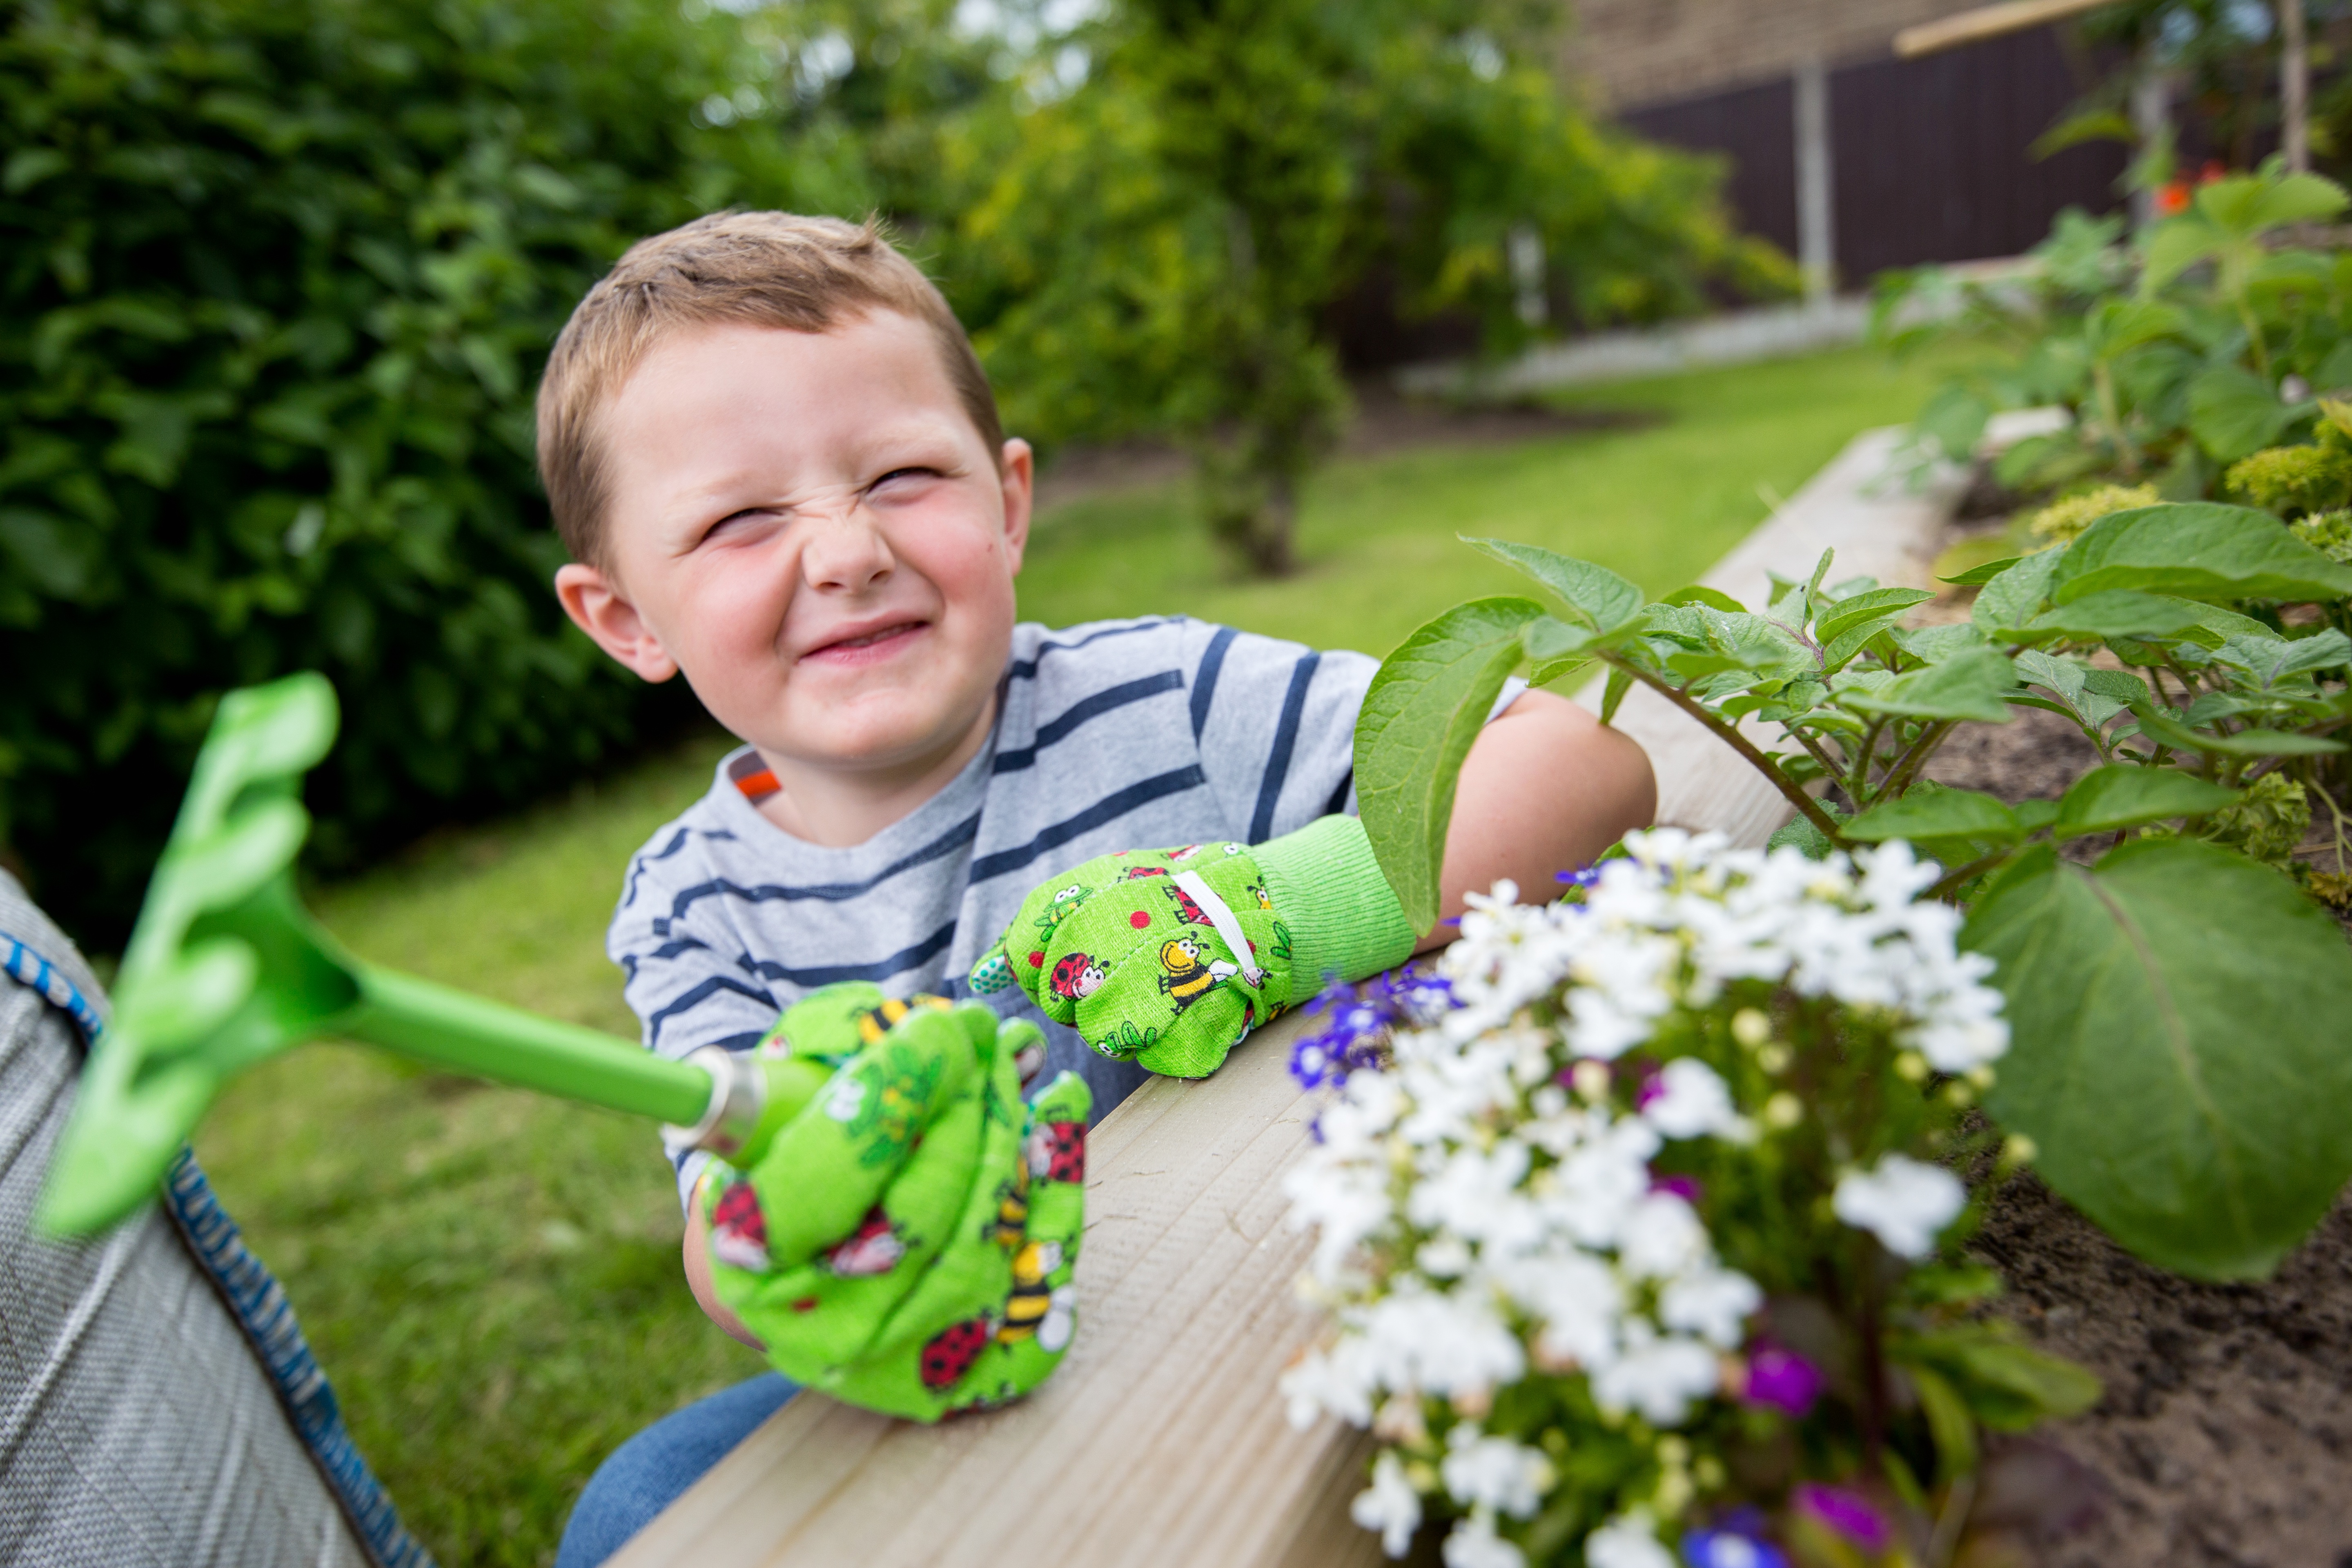 Young boy in garden at Plant and Grow event